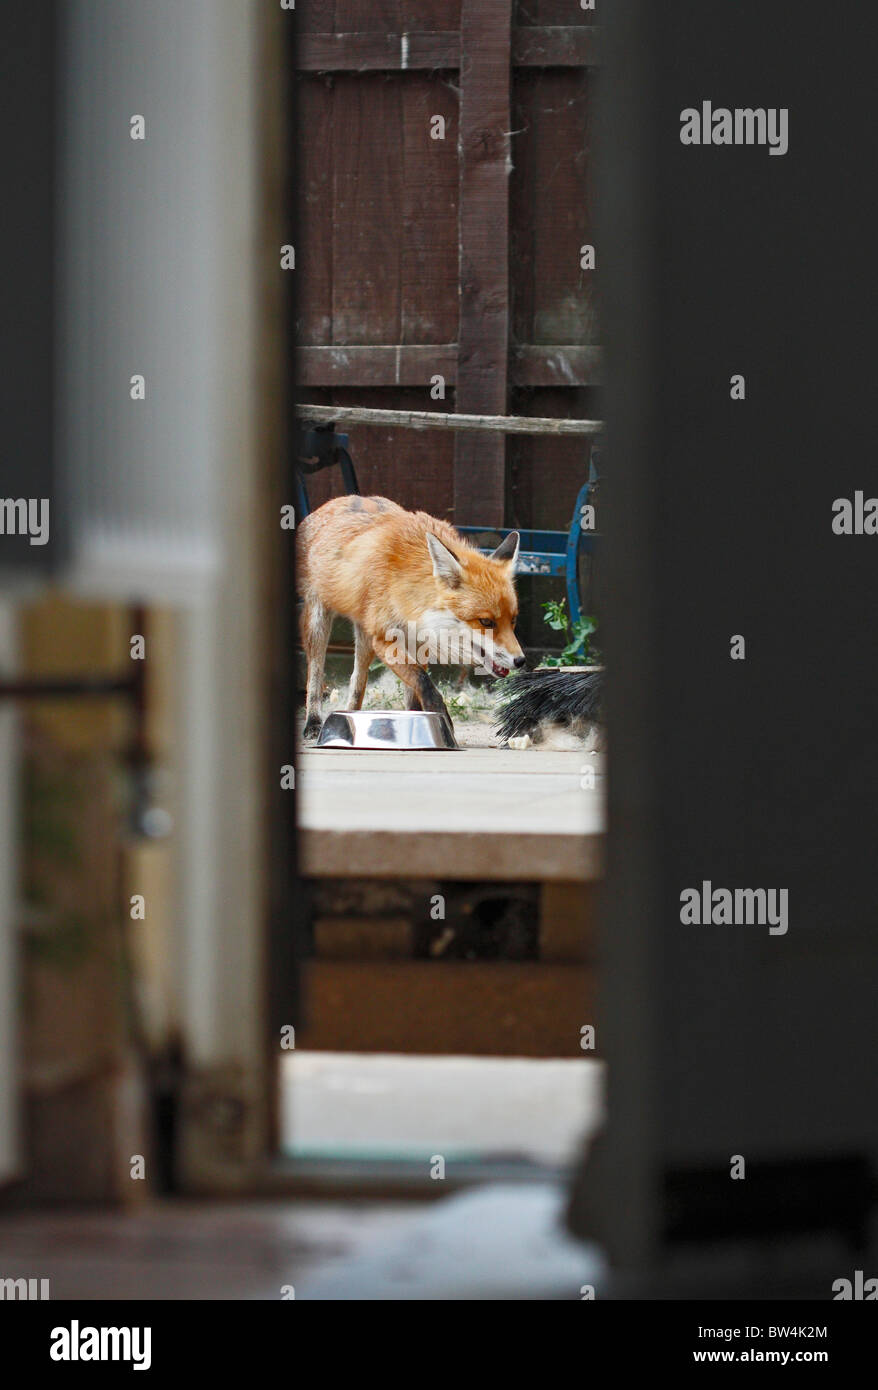 Dog Stealing Food From Container